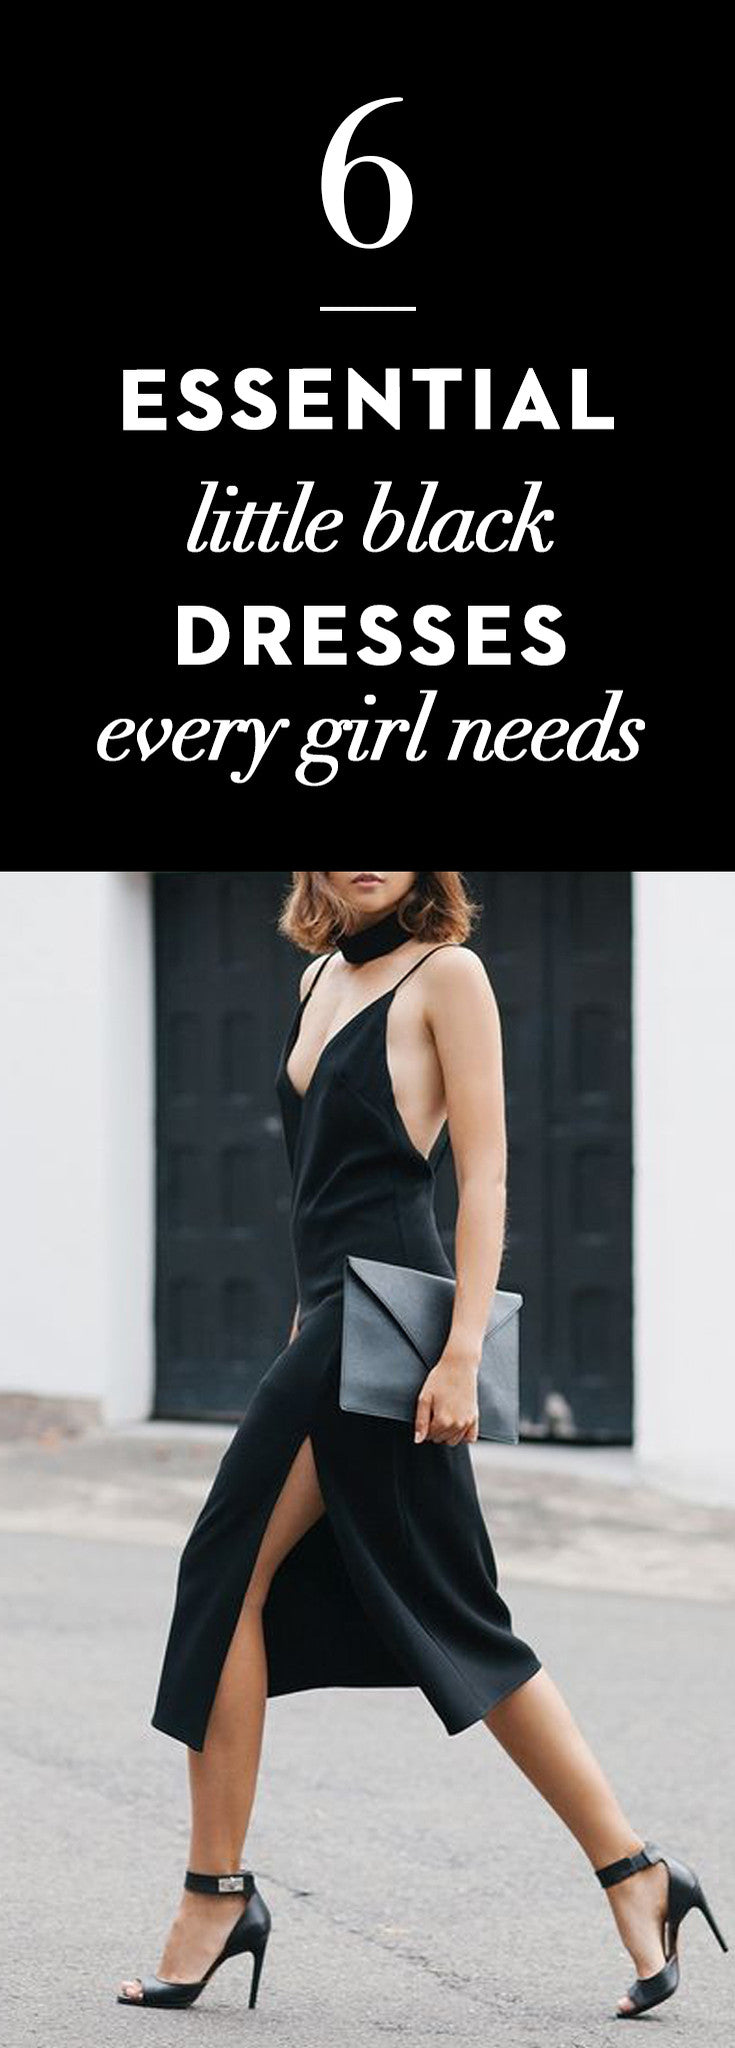 6 Essential Little Black Dresses Every Girl Needs